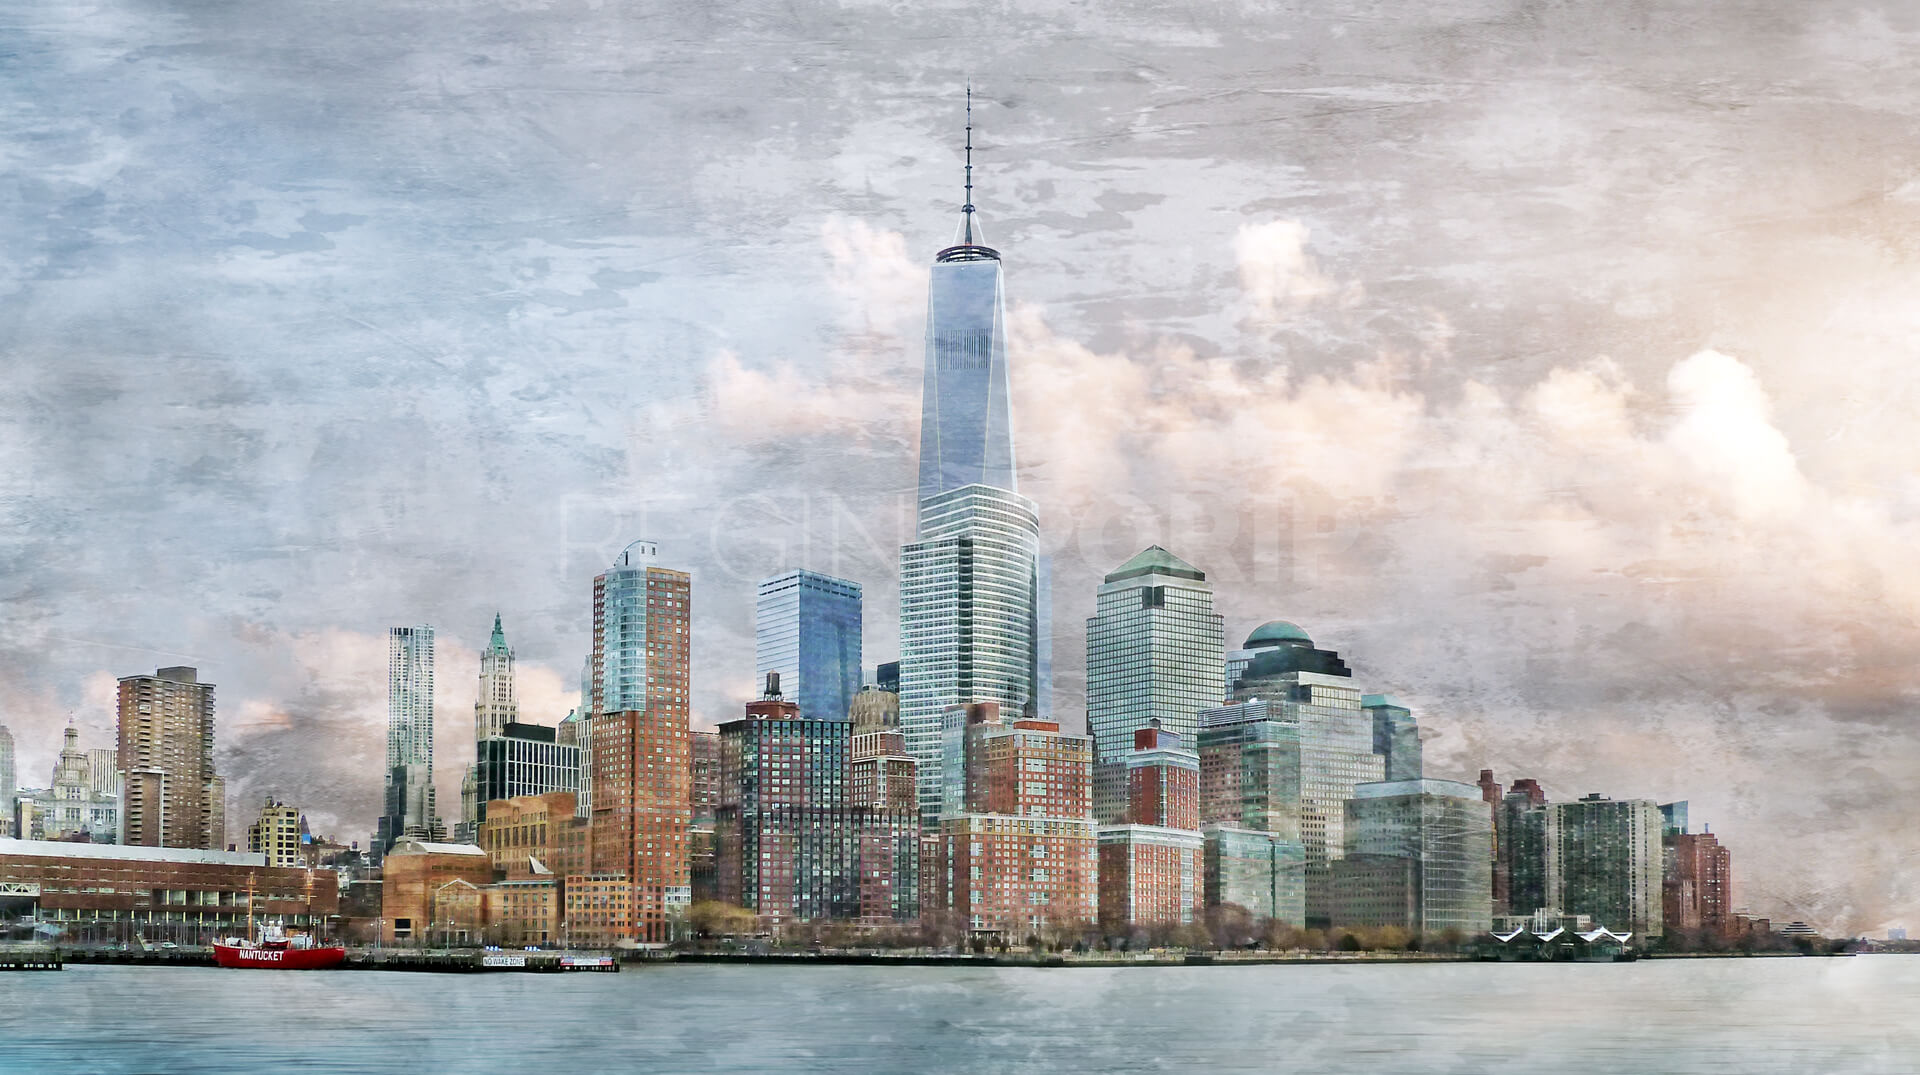 new york city skyline 14 90 x 50 cm kunst fotografie und design aus hamburg von regina porip. Black Bedroom Furniture Sets. Home Design Ideas